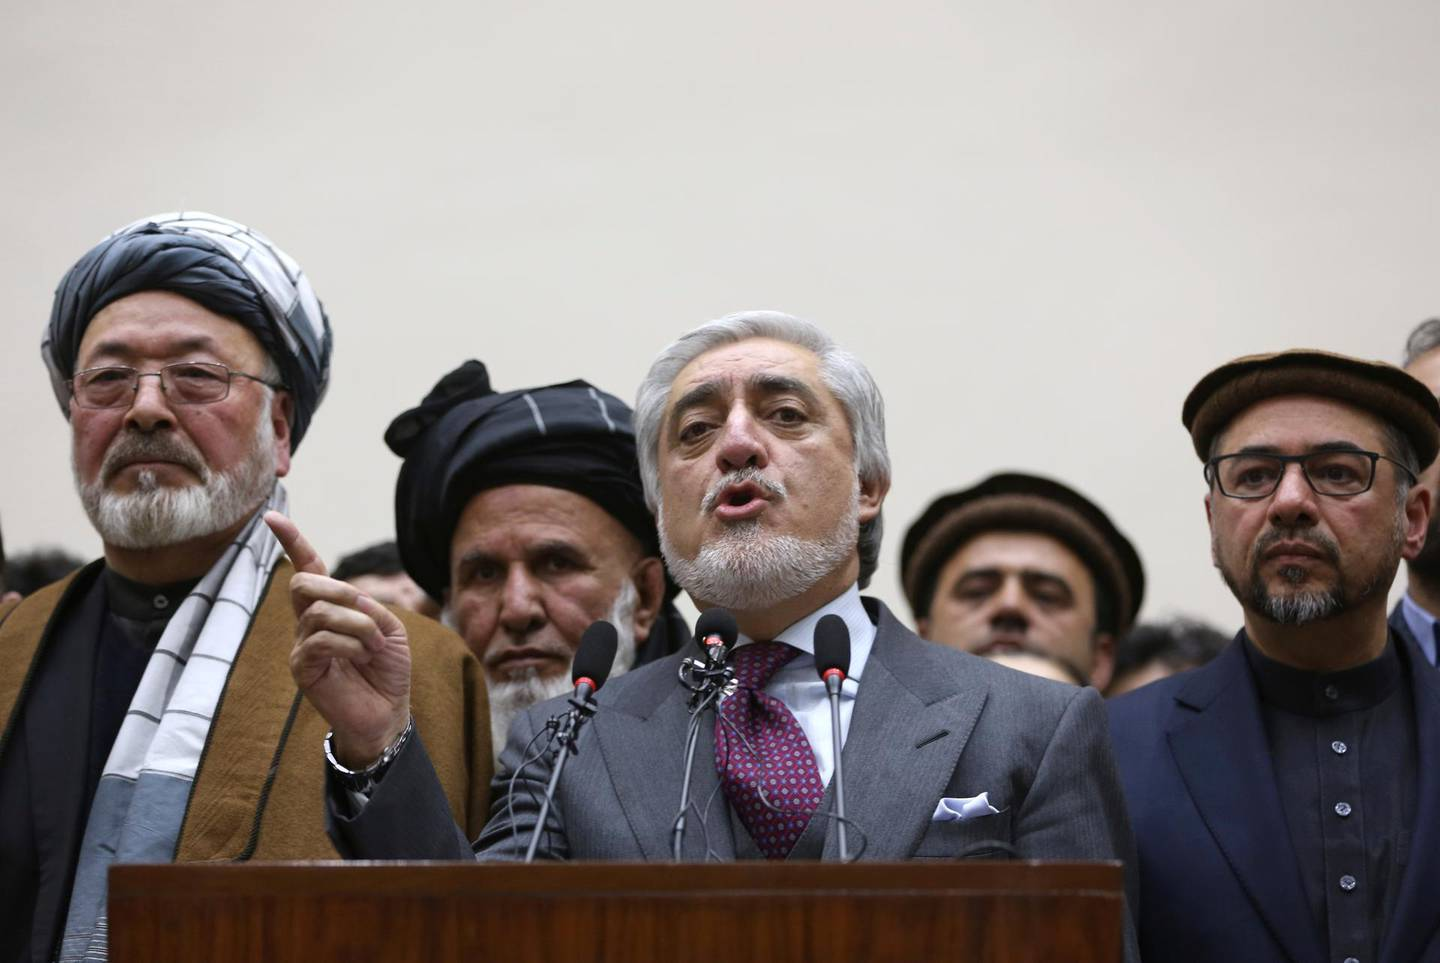 Afghan presidential candidate Abdullah Abdullah, center, addresses the media following a conference with his party members in Kabul, Afghanistan, Tuesday, Feb. 18, 2020. The country's independent election commission said Tuesday that Ashraf Ghani  won a second term as president, more than four months after polls closed. (AP Photo/Rahmat Gul)